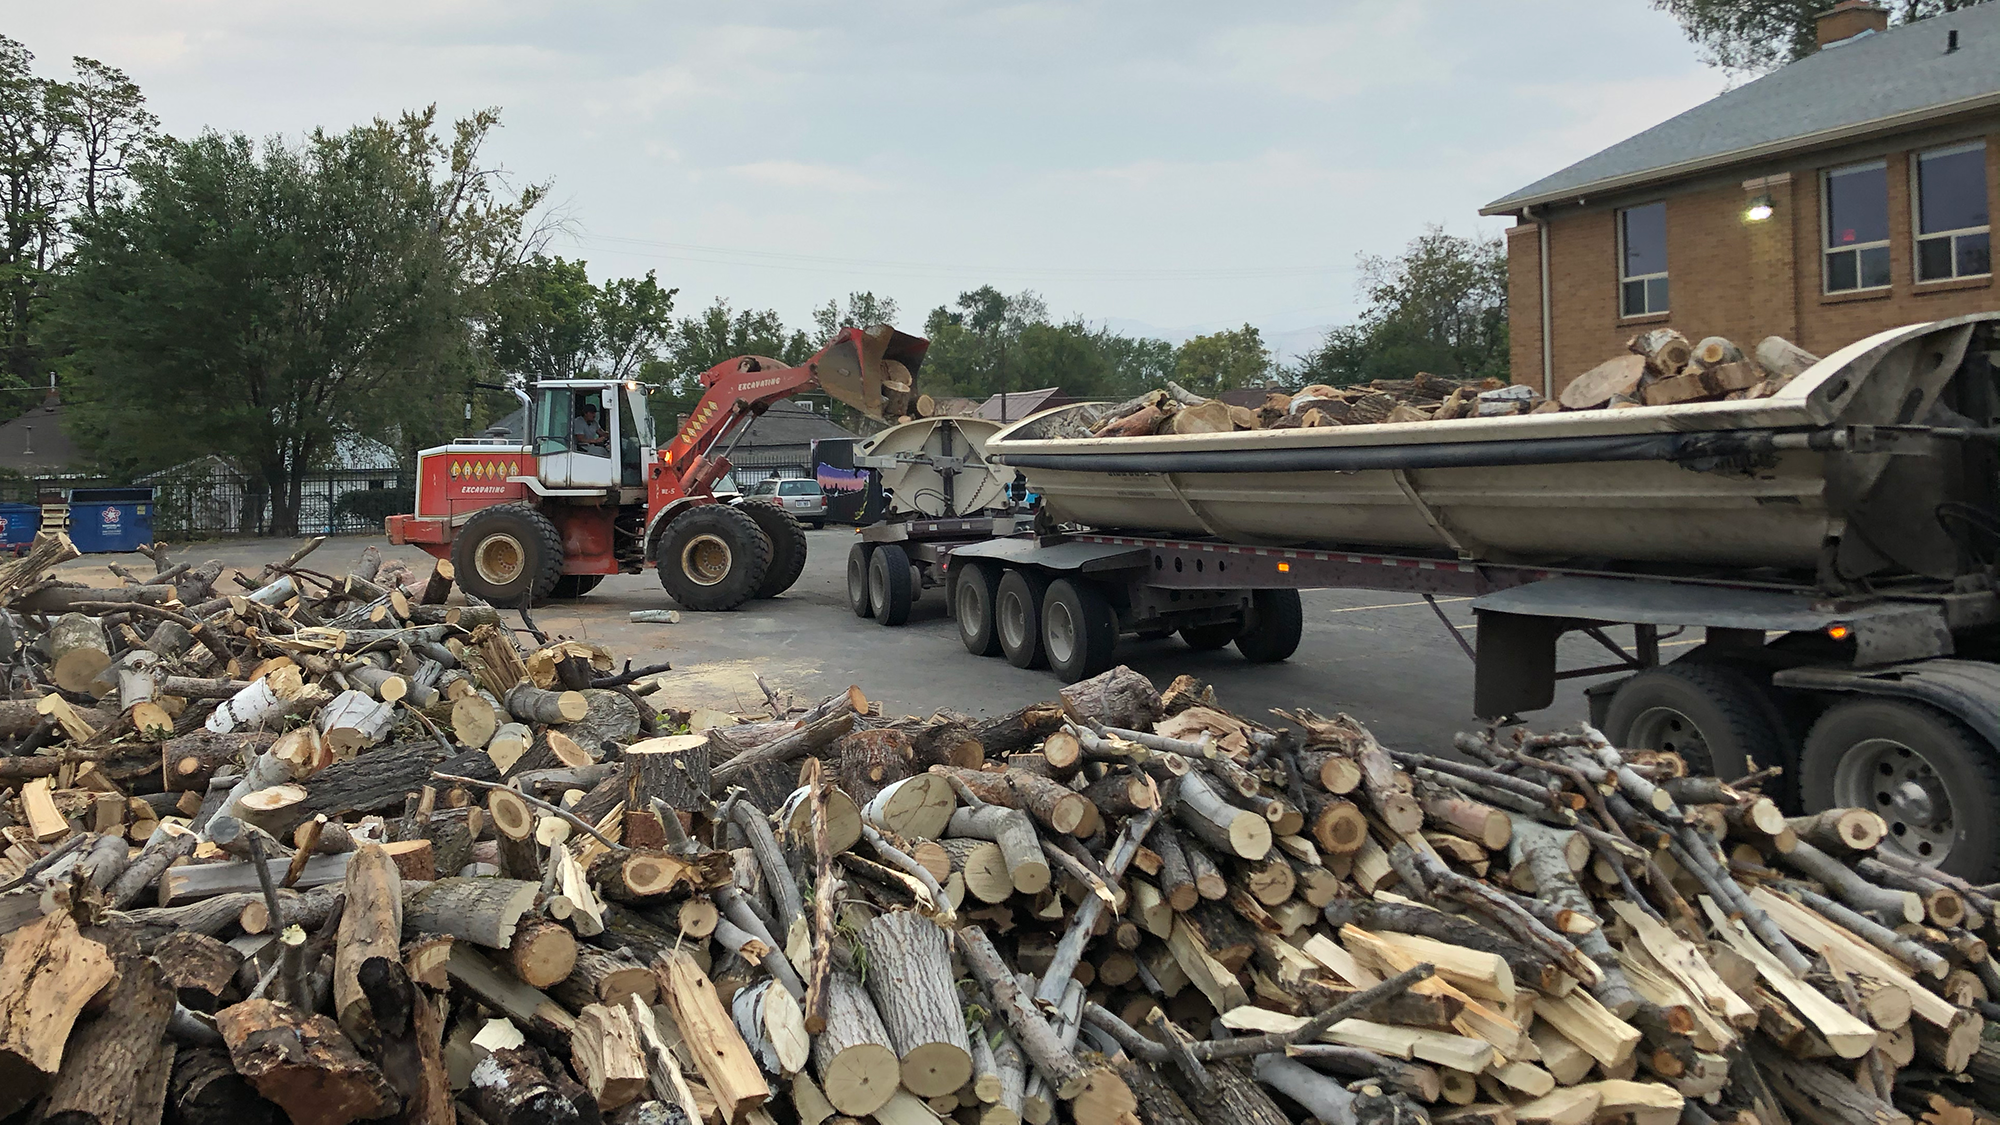 an 18-wheel truck bed is loaded with firewood and is parked next to a large pile of more firewood